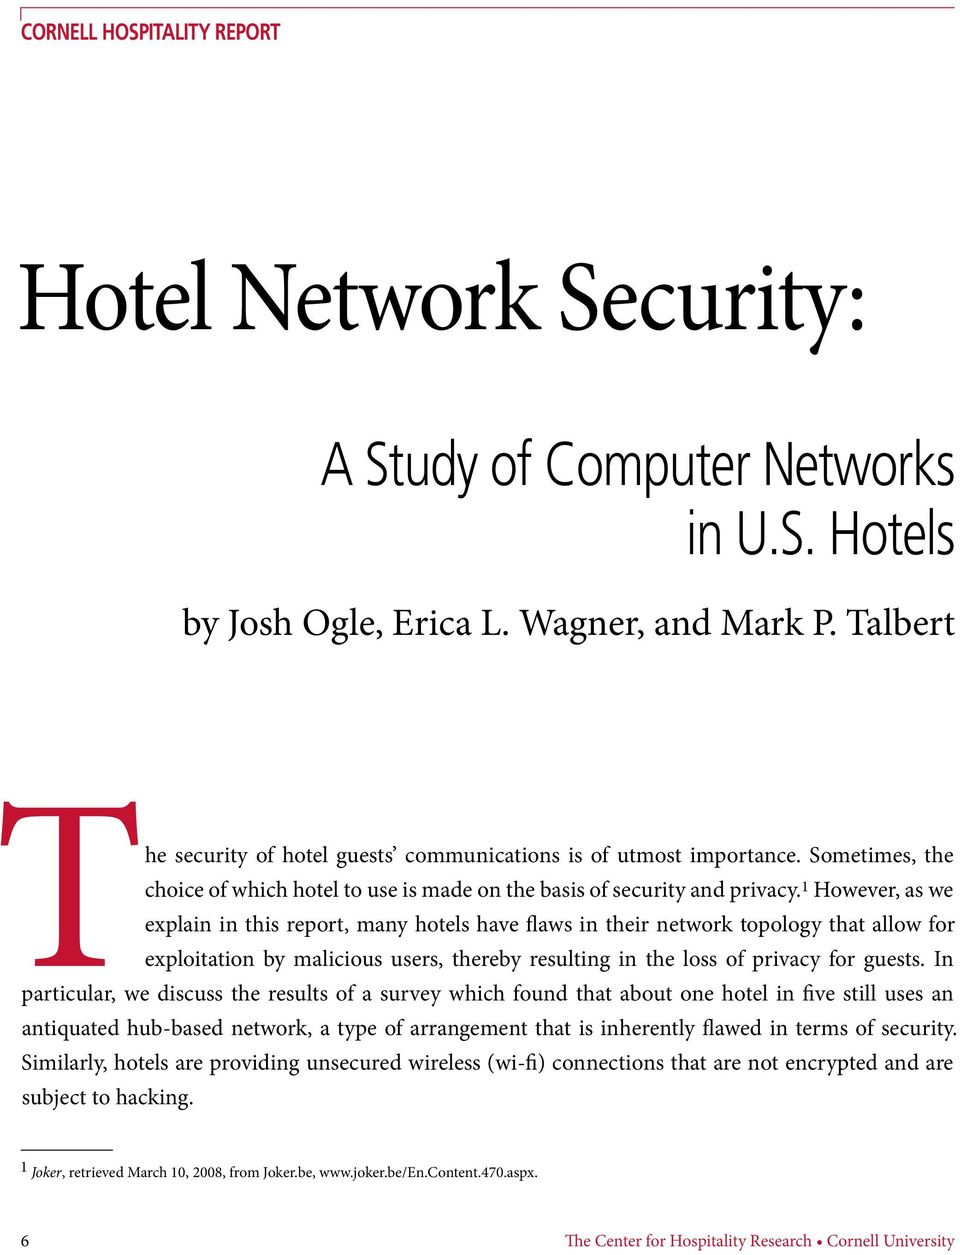 1 However, as we explain in this report, many hotels have flaws in their network topology that allow for exploitation by malicious users, thereby resulting in the loss of privacy for guests.